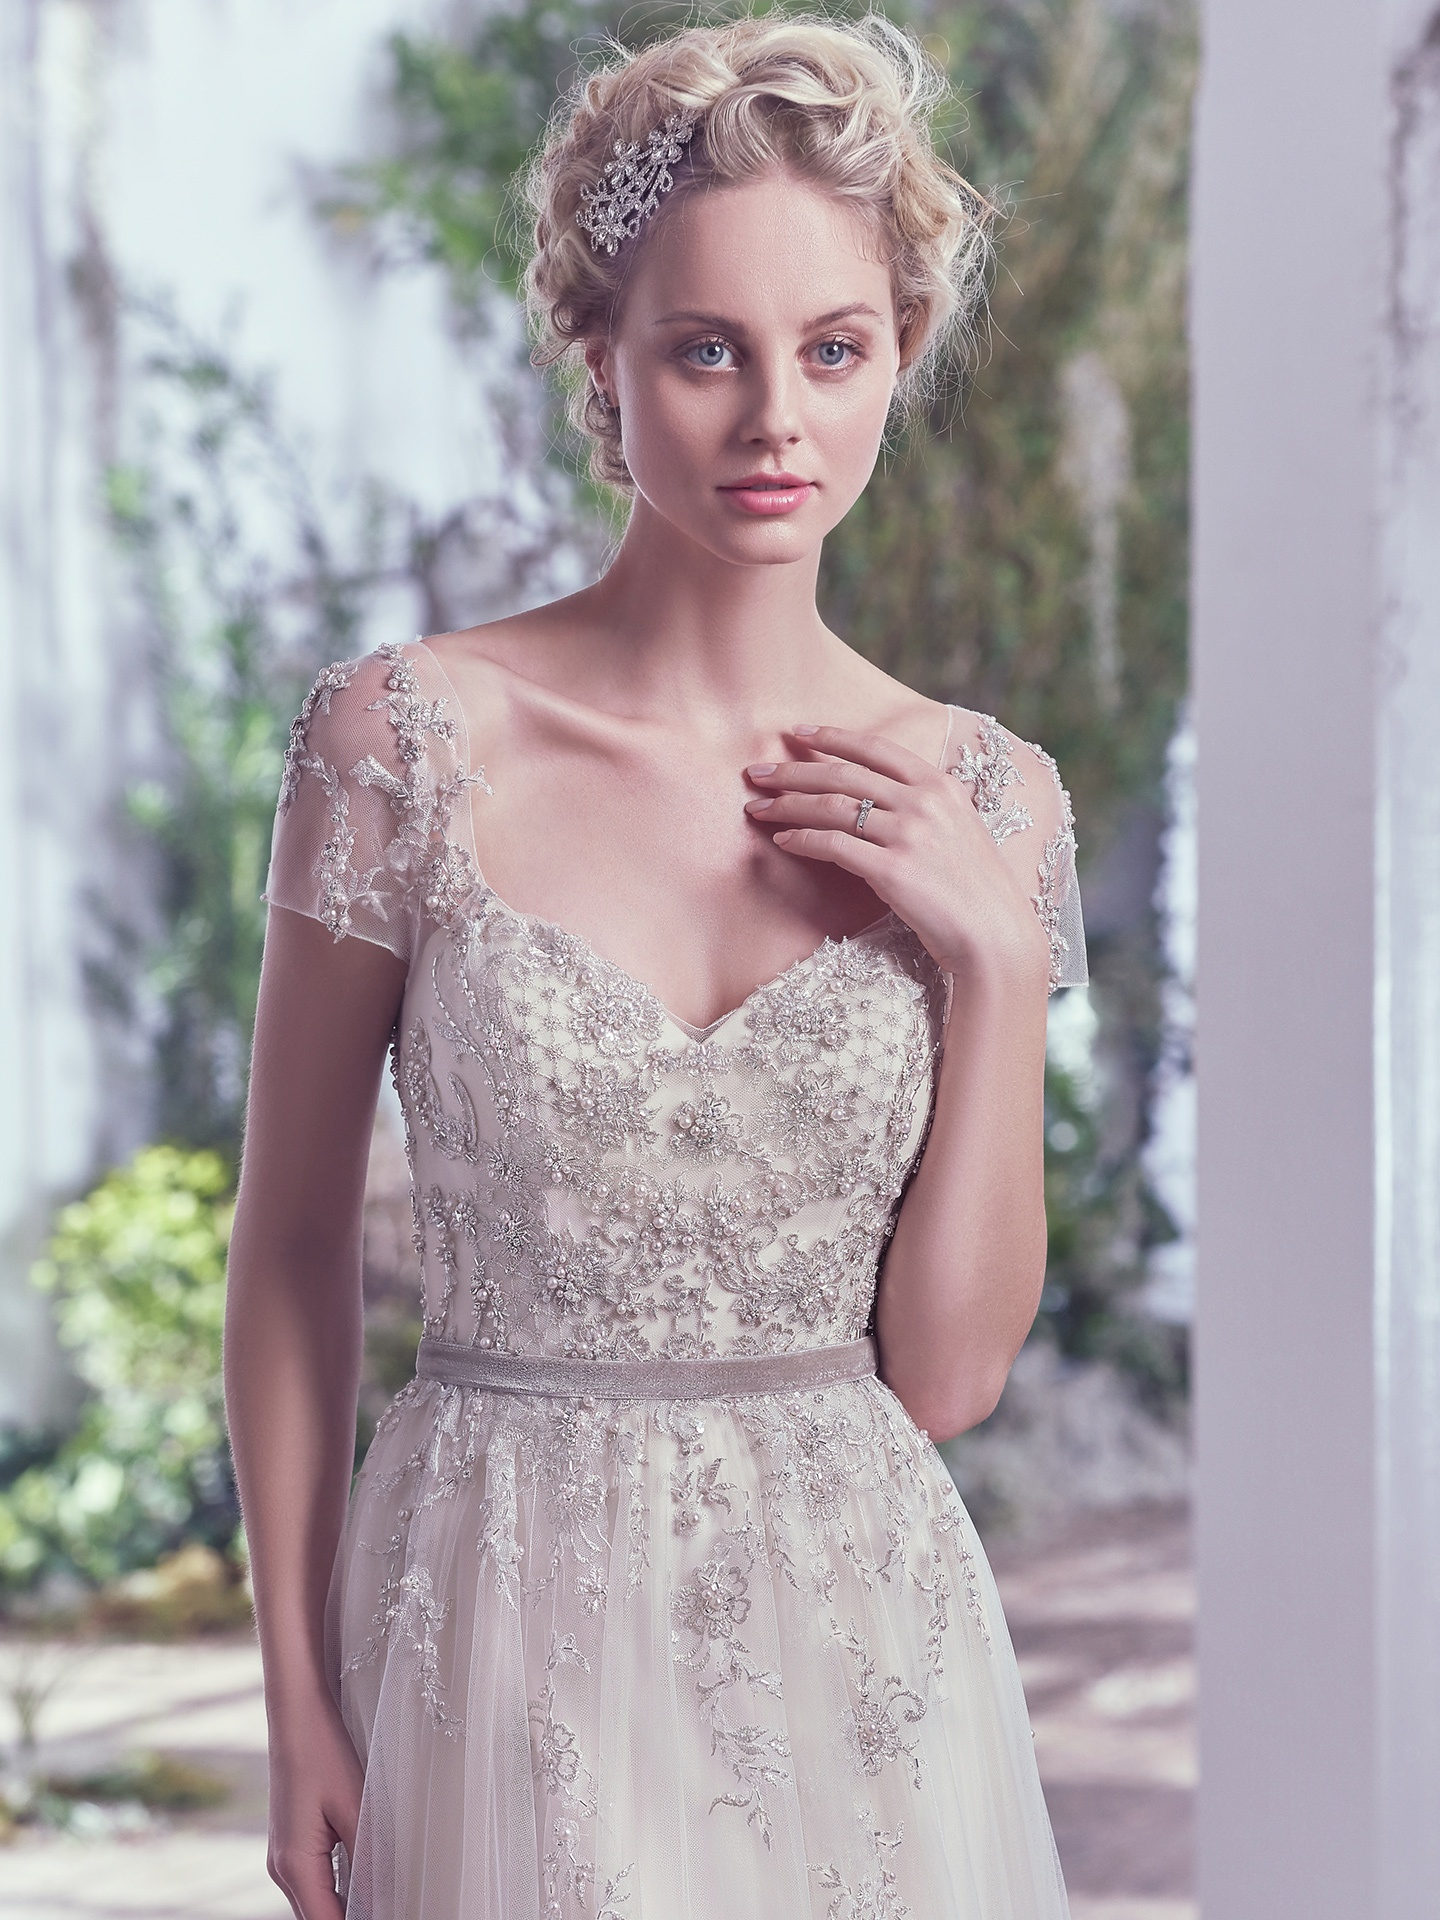 Elegant And Whimsical Vintage Inspired Wedding Dress Kylie By Maggie Sottero